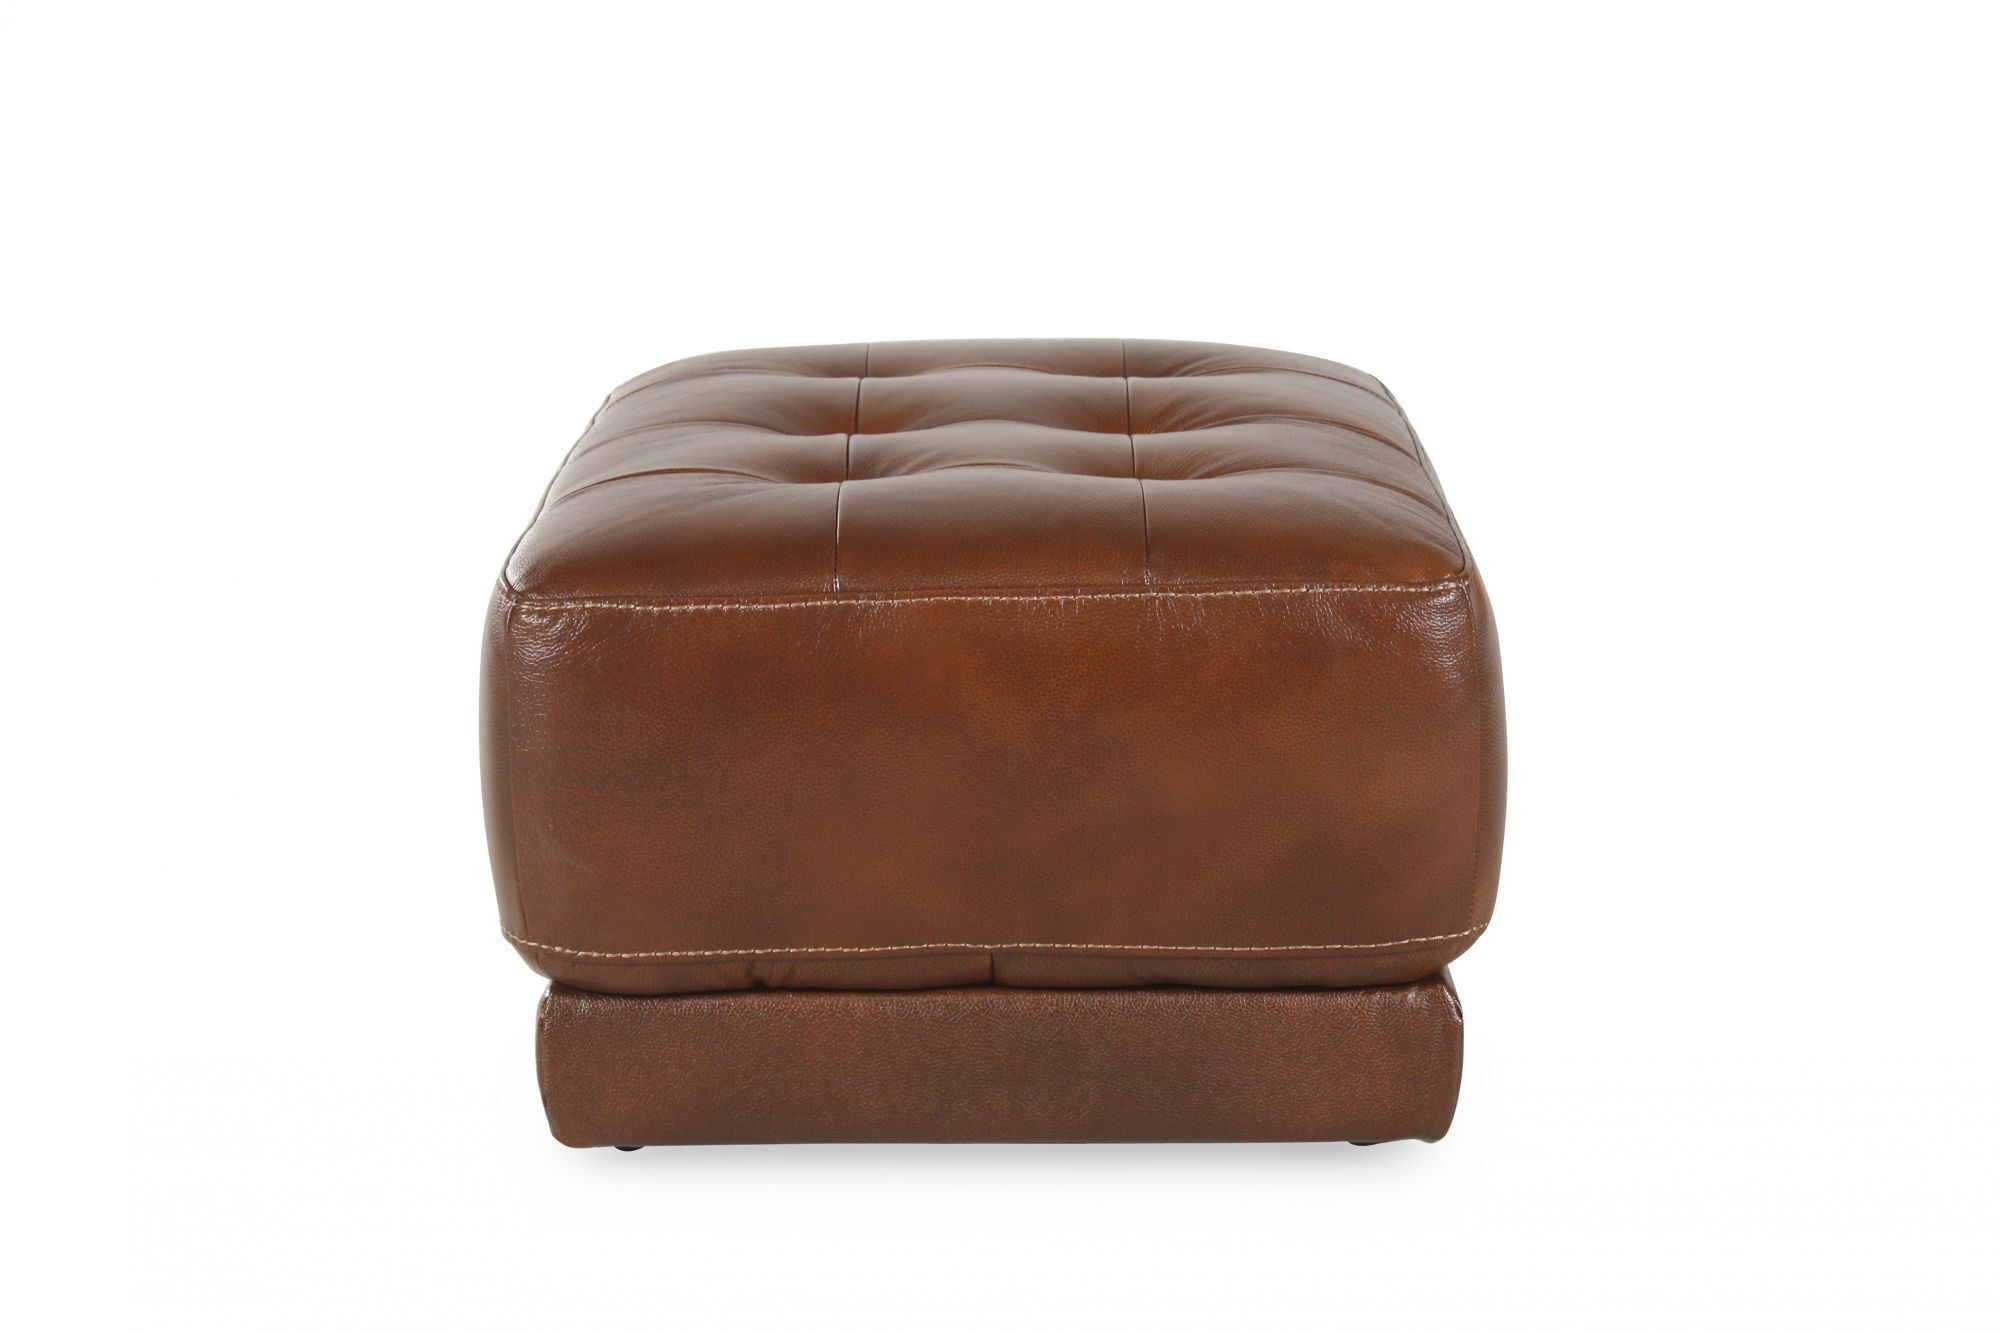 Button-Tufted Traditional Leather Ottoman In Brown